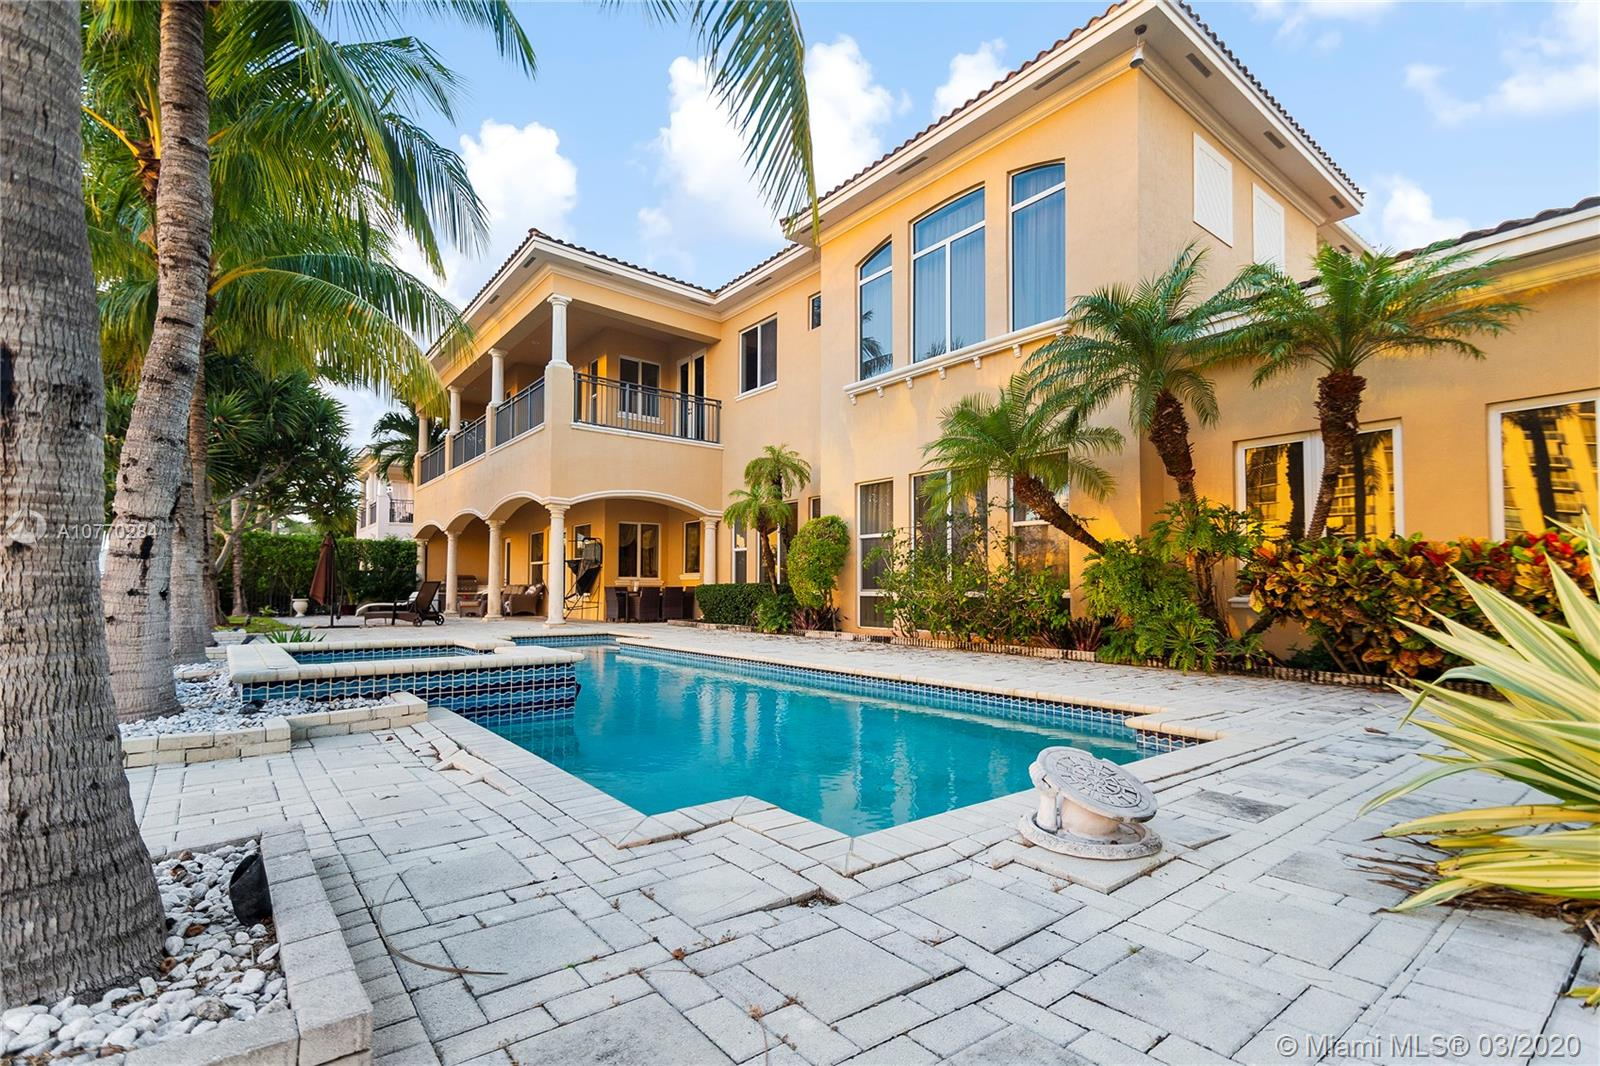 """Located 30 minutes from North Miami Beach, come discover a private Island neighborhood in Hollywood Beach. The very attractive and well manicured """"Three Islands"""" has direct water access and is located in close proximity to the beaches and the best shopping center in South Florida.This wonderful property built in 2004 offers you 5,800 sq. ft. 6 bedrooms, 7 baths with a 3 car garage on a large double lot. 110-ft dock & 20-ton boat lift offers intercoastal access with no fixed bridges requiring maintenance. Enjoy your private swimming pool, 2 Jacuzzis and your private spa that includes a regular and wet sauna. Enjoy this magnificent family home, feel enamored thanks to the detail-oriented landscaping. Filled to the brim with stunning modernupgrades.Dream home that won't last long!"""